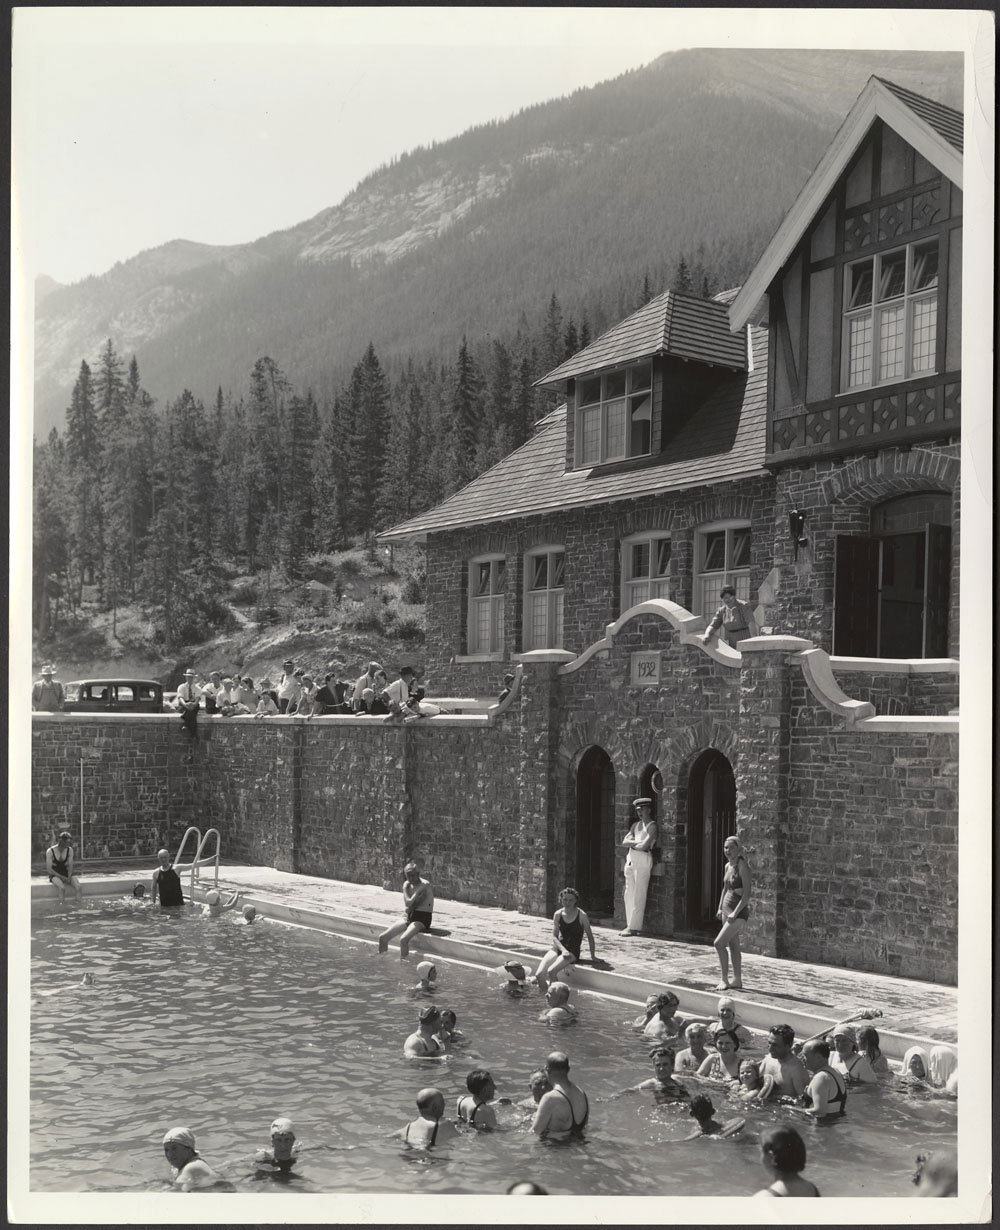 And so they did with many drawn by the banff springs hotel which opened on june 1 1888 this photo shows the hotel as it appeared circa 1920